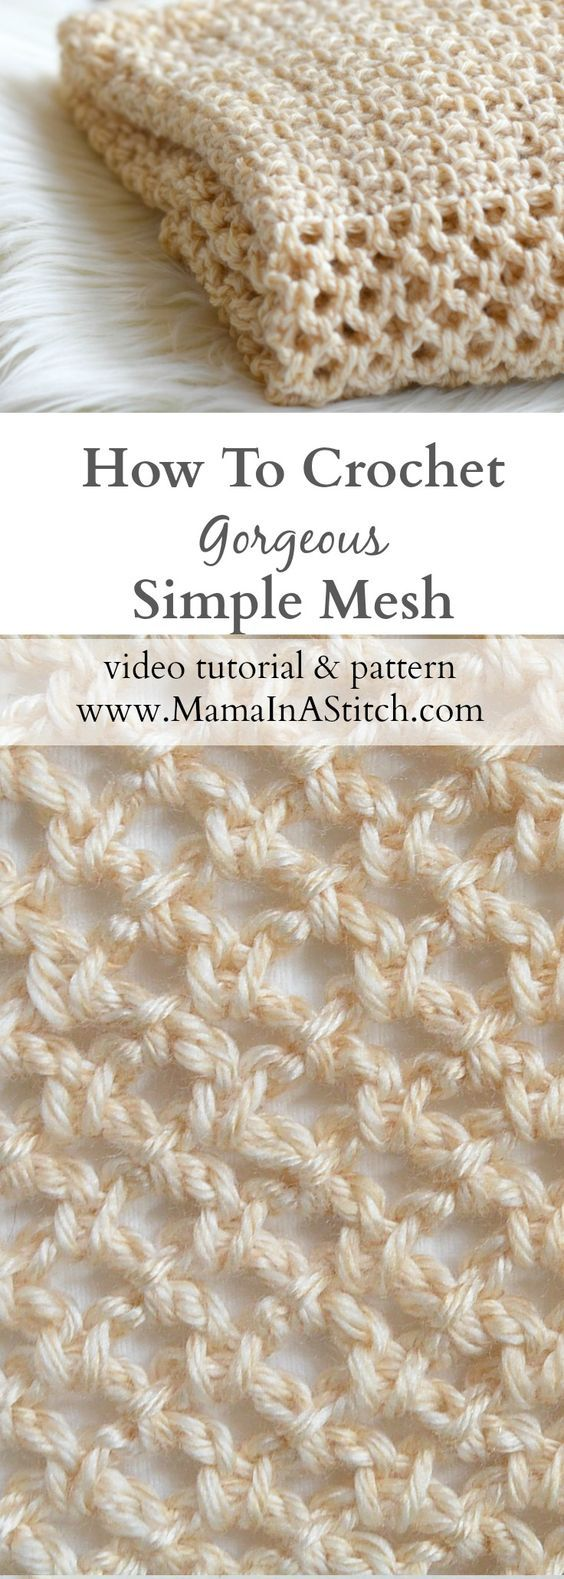 How To Crochet An Easy Mesh Stitch via @MamaInAStitch This is a modern mesh stitch works up beautifully and is so easy to make! Free pattern and tutorial.: